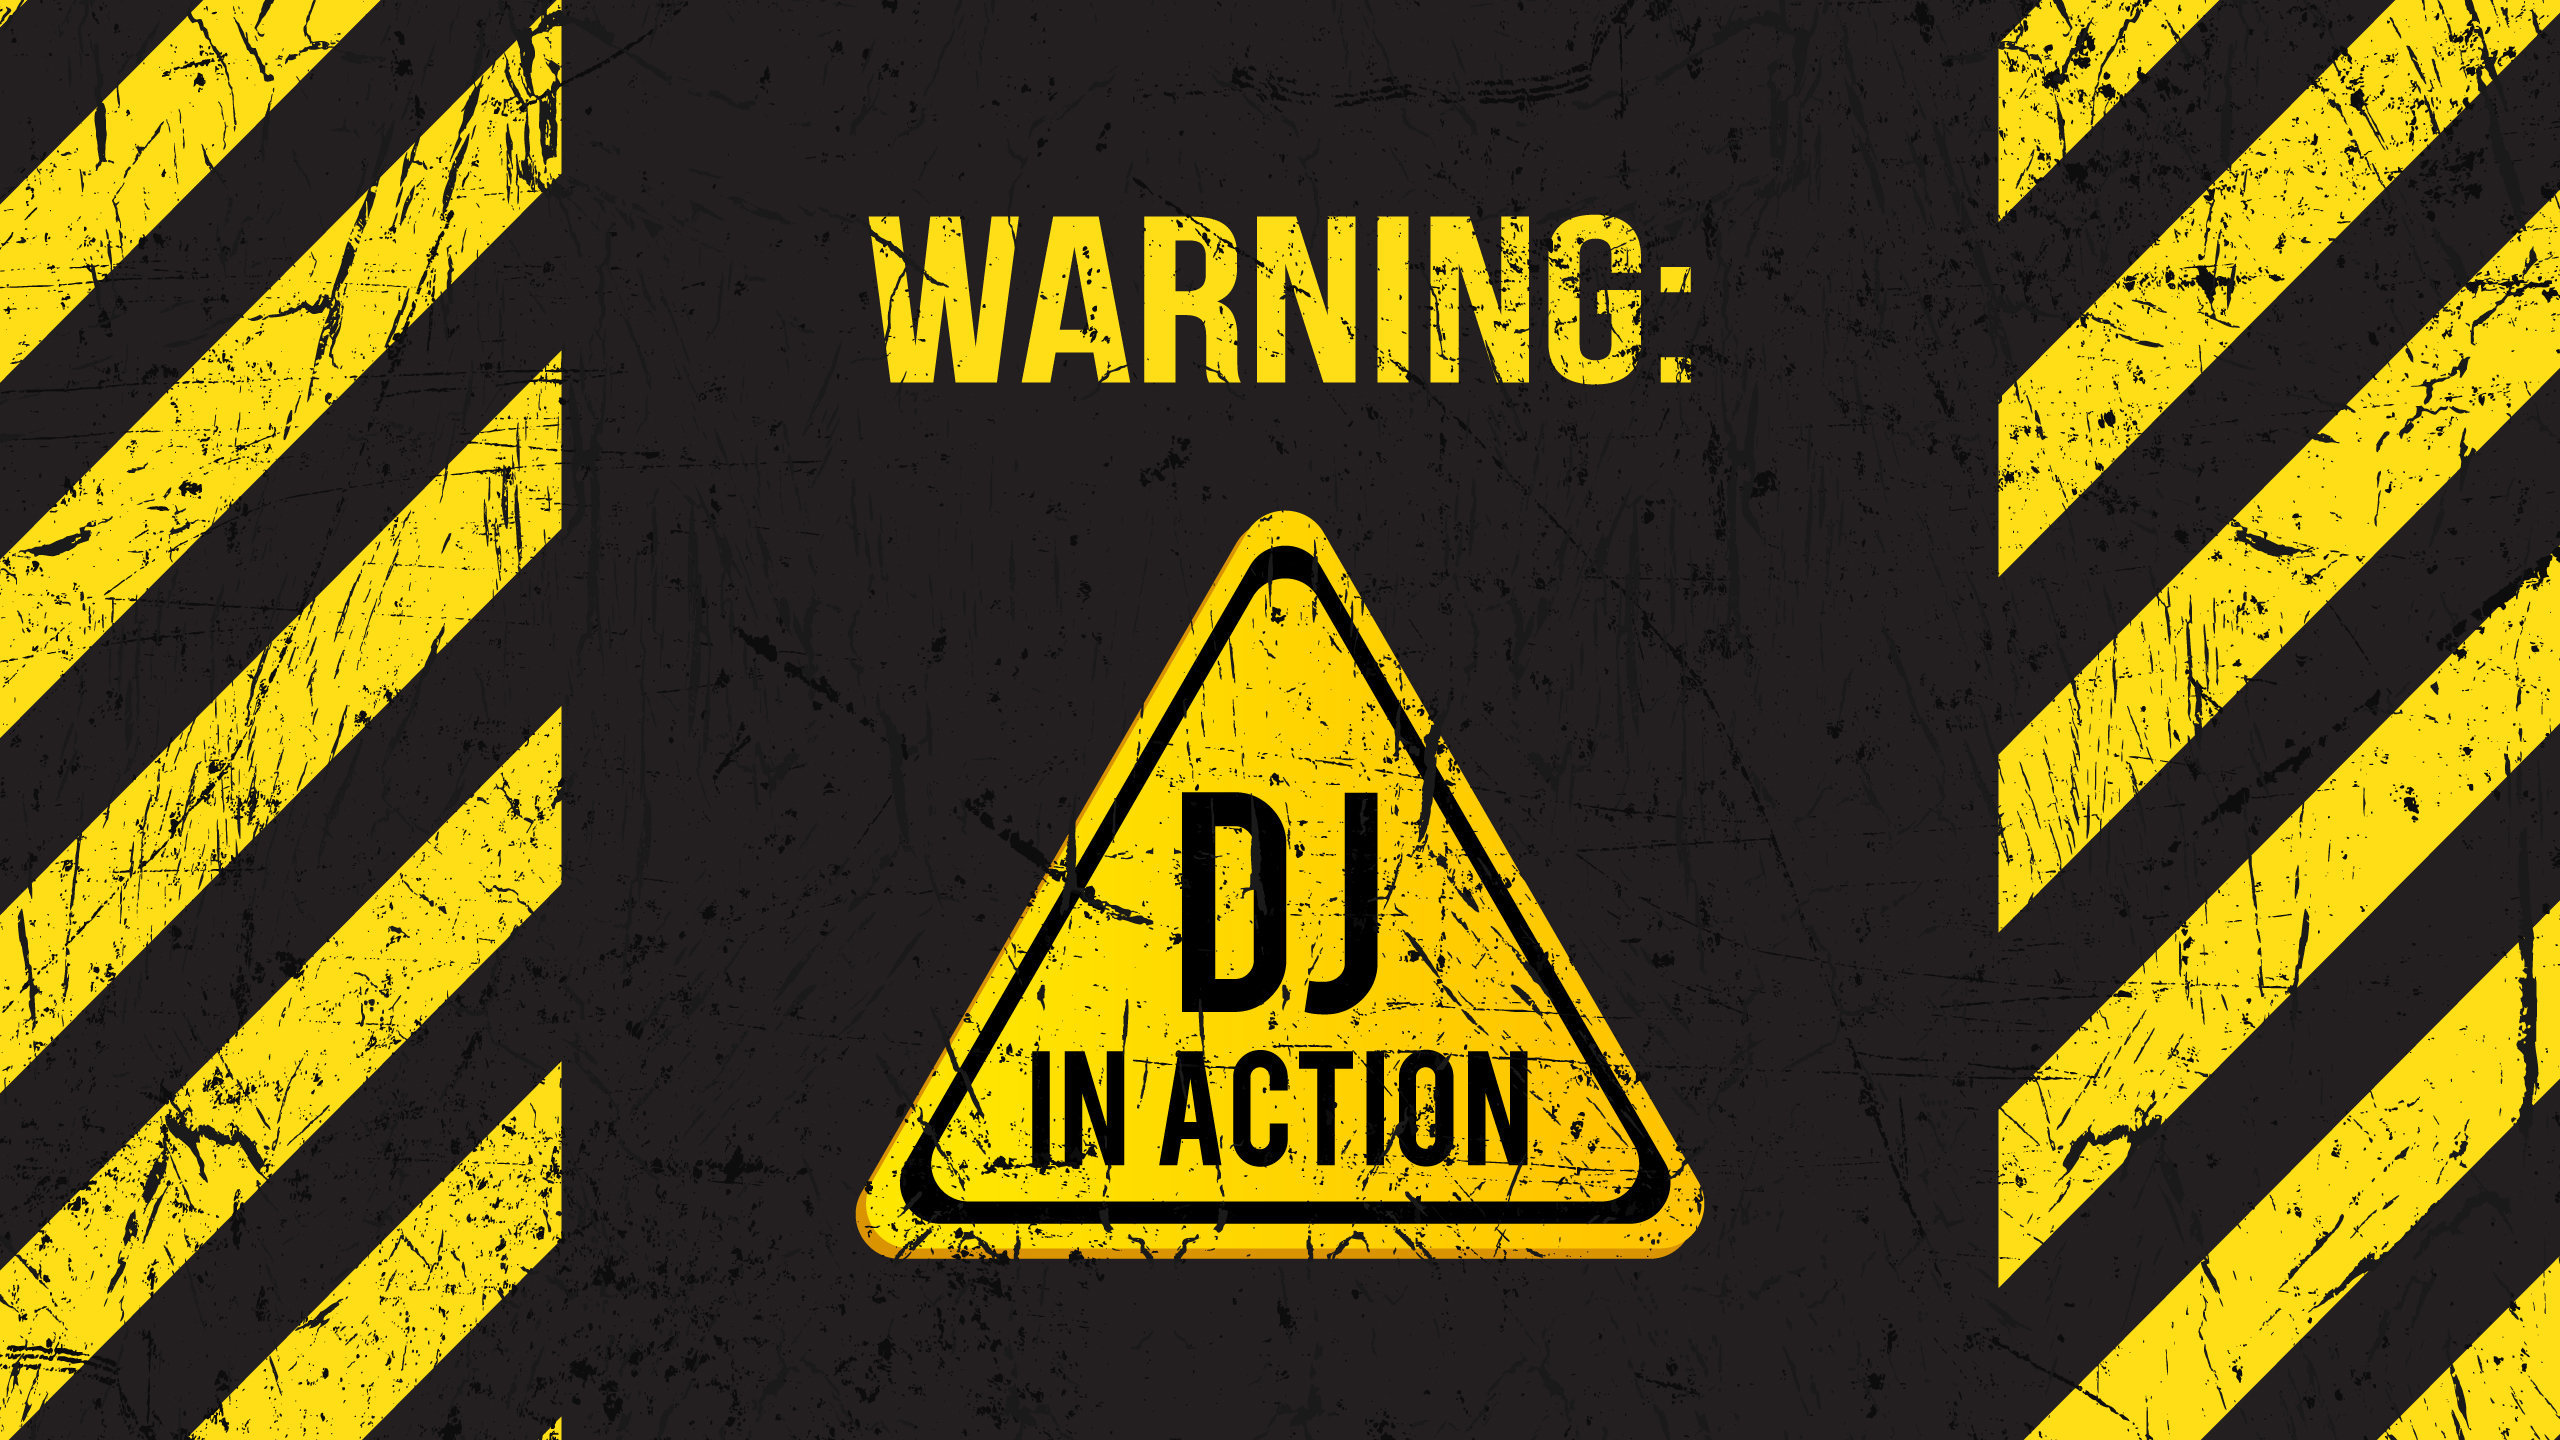 Warning DJ in Action Wallpaper